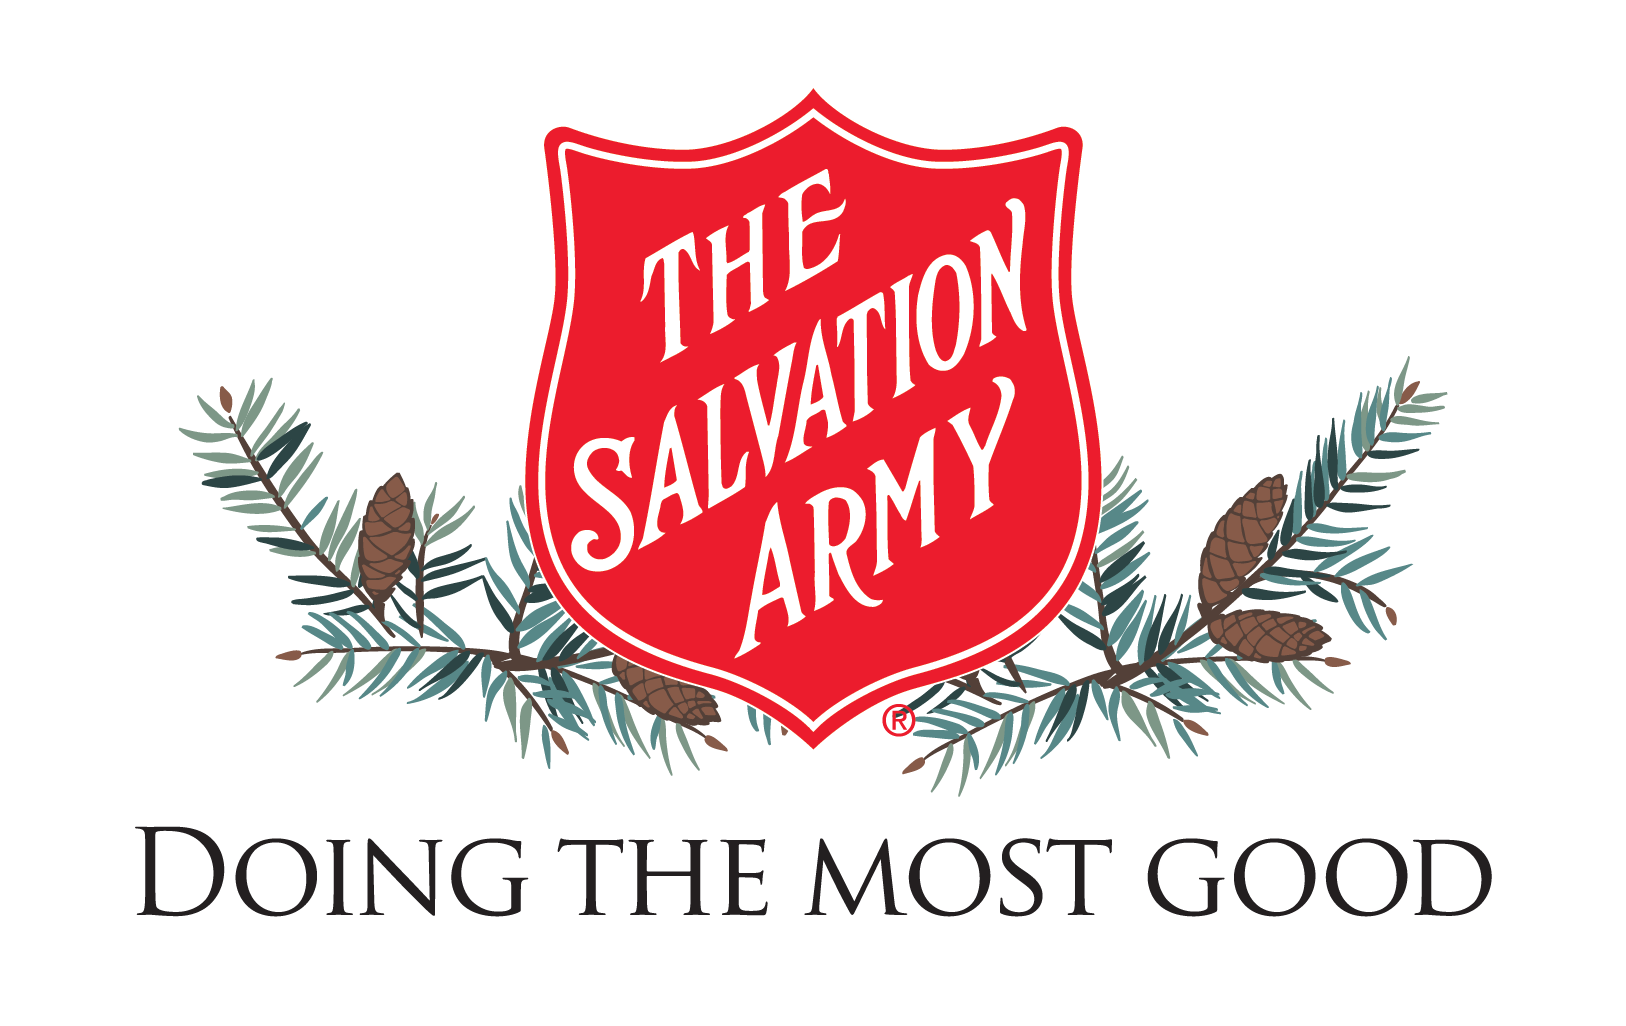 During The Holiday Season Salvation Army Is At It S Hight Of Operation To Successfully Meet Needs Thousands People We Need You